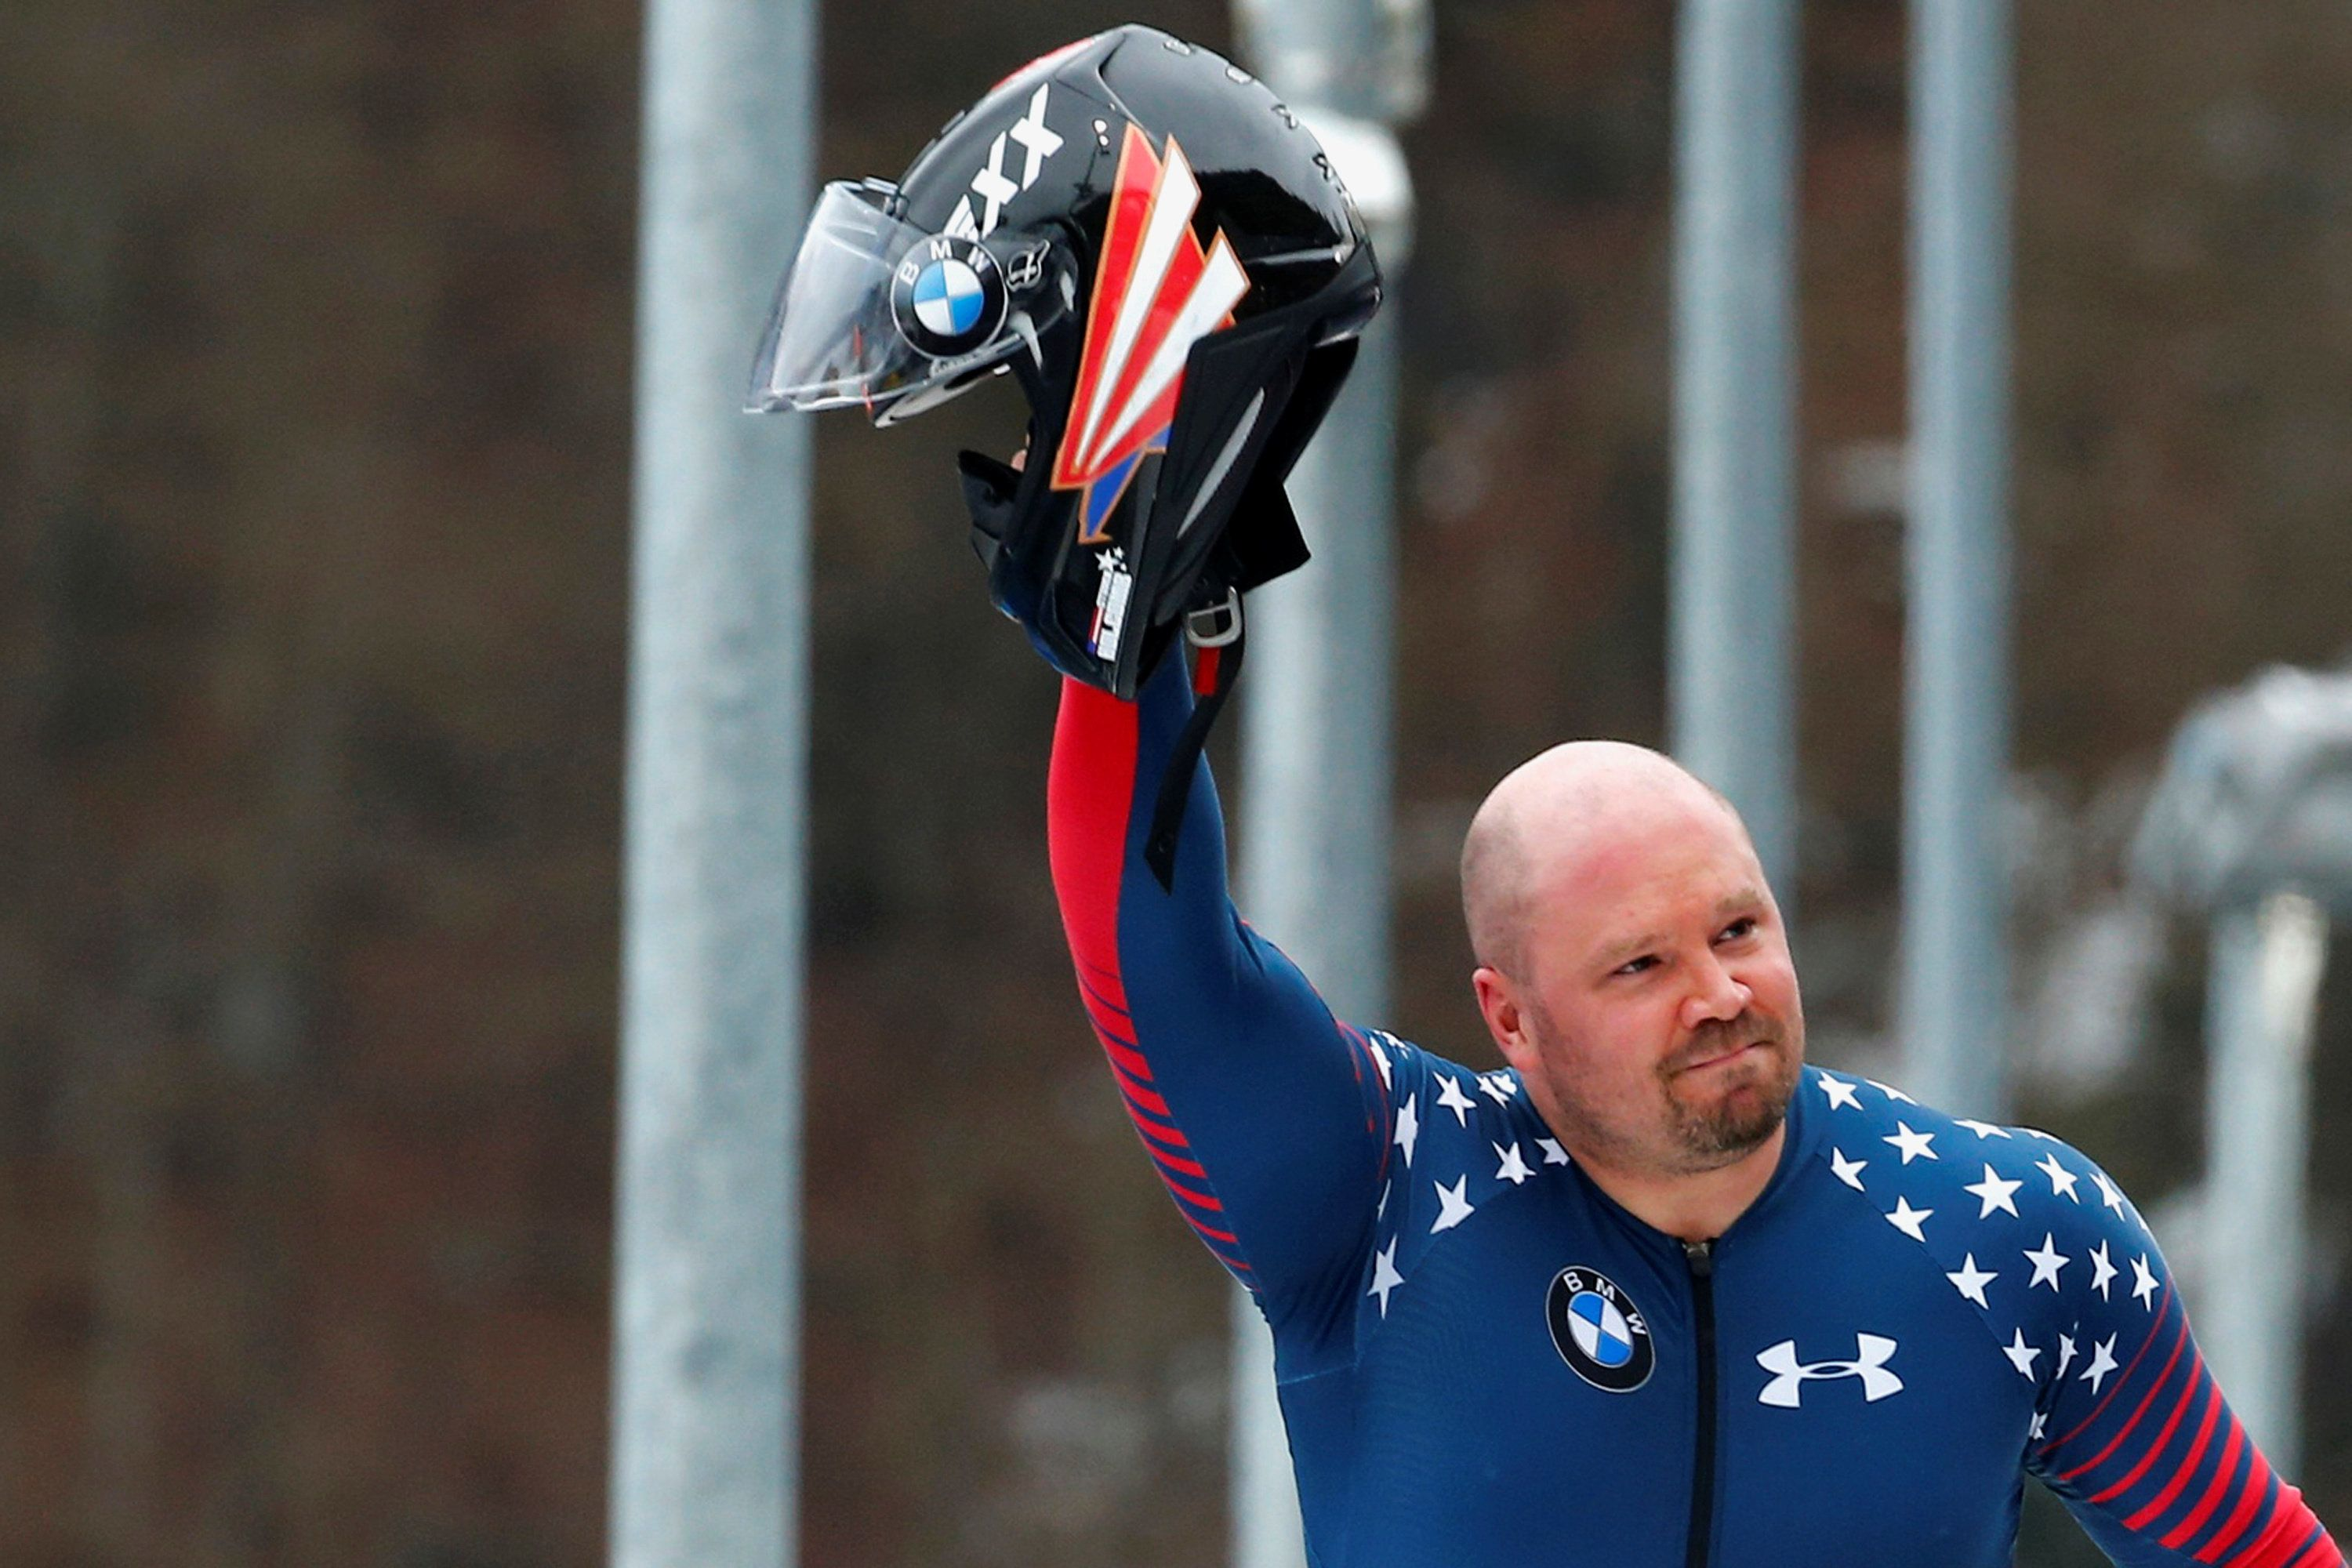 FILE PHOTO: Bobsleigh - BMW IBSF Bob & Skeleton World Championships - 4-men final race - Koenigssee, Germany - 26/2/17 - Pilot Steven Holcomb of the USA reacts.      REUTERS/Arnd Wiegmann/File Photo